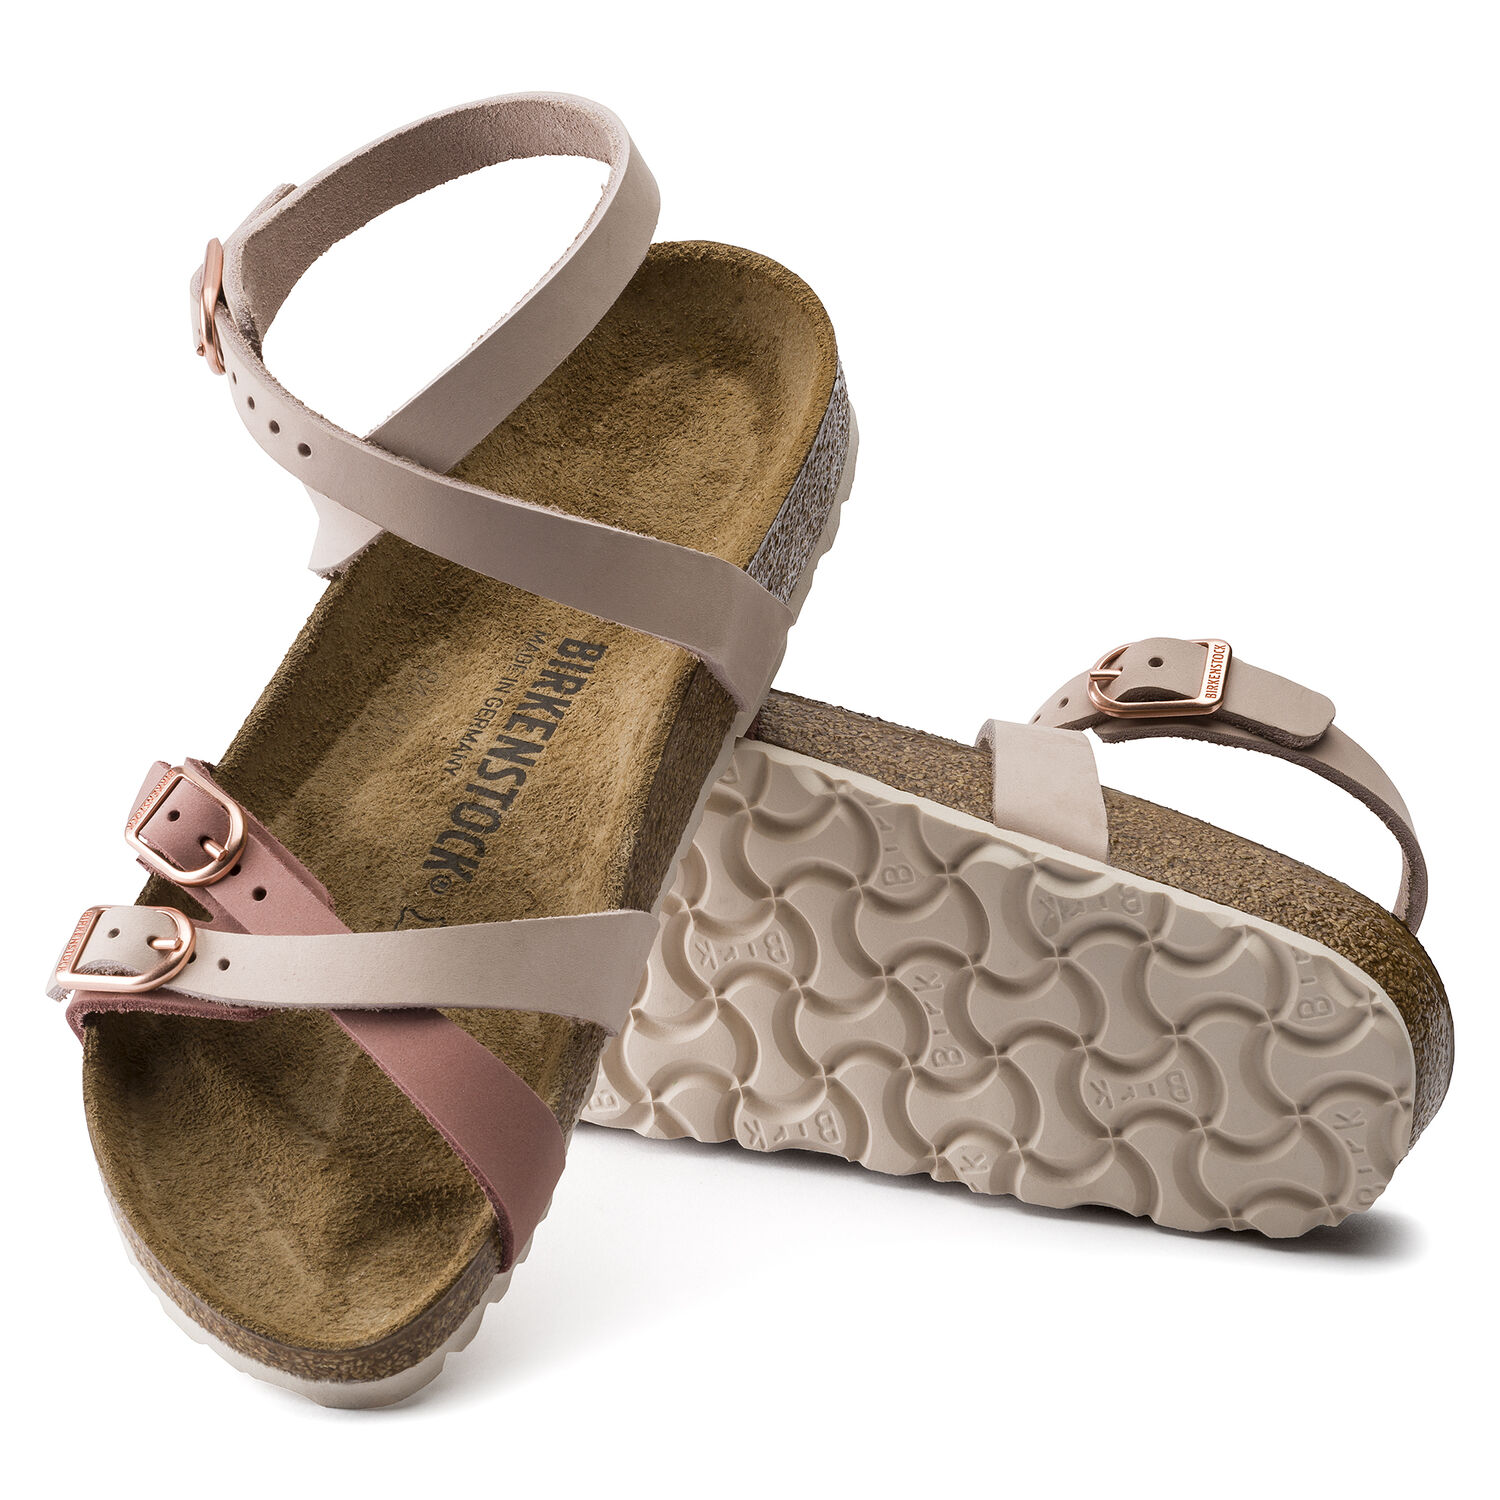 Blanca Nubuck Leather